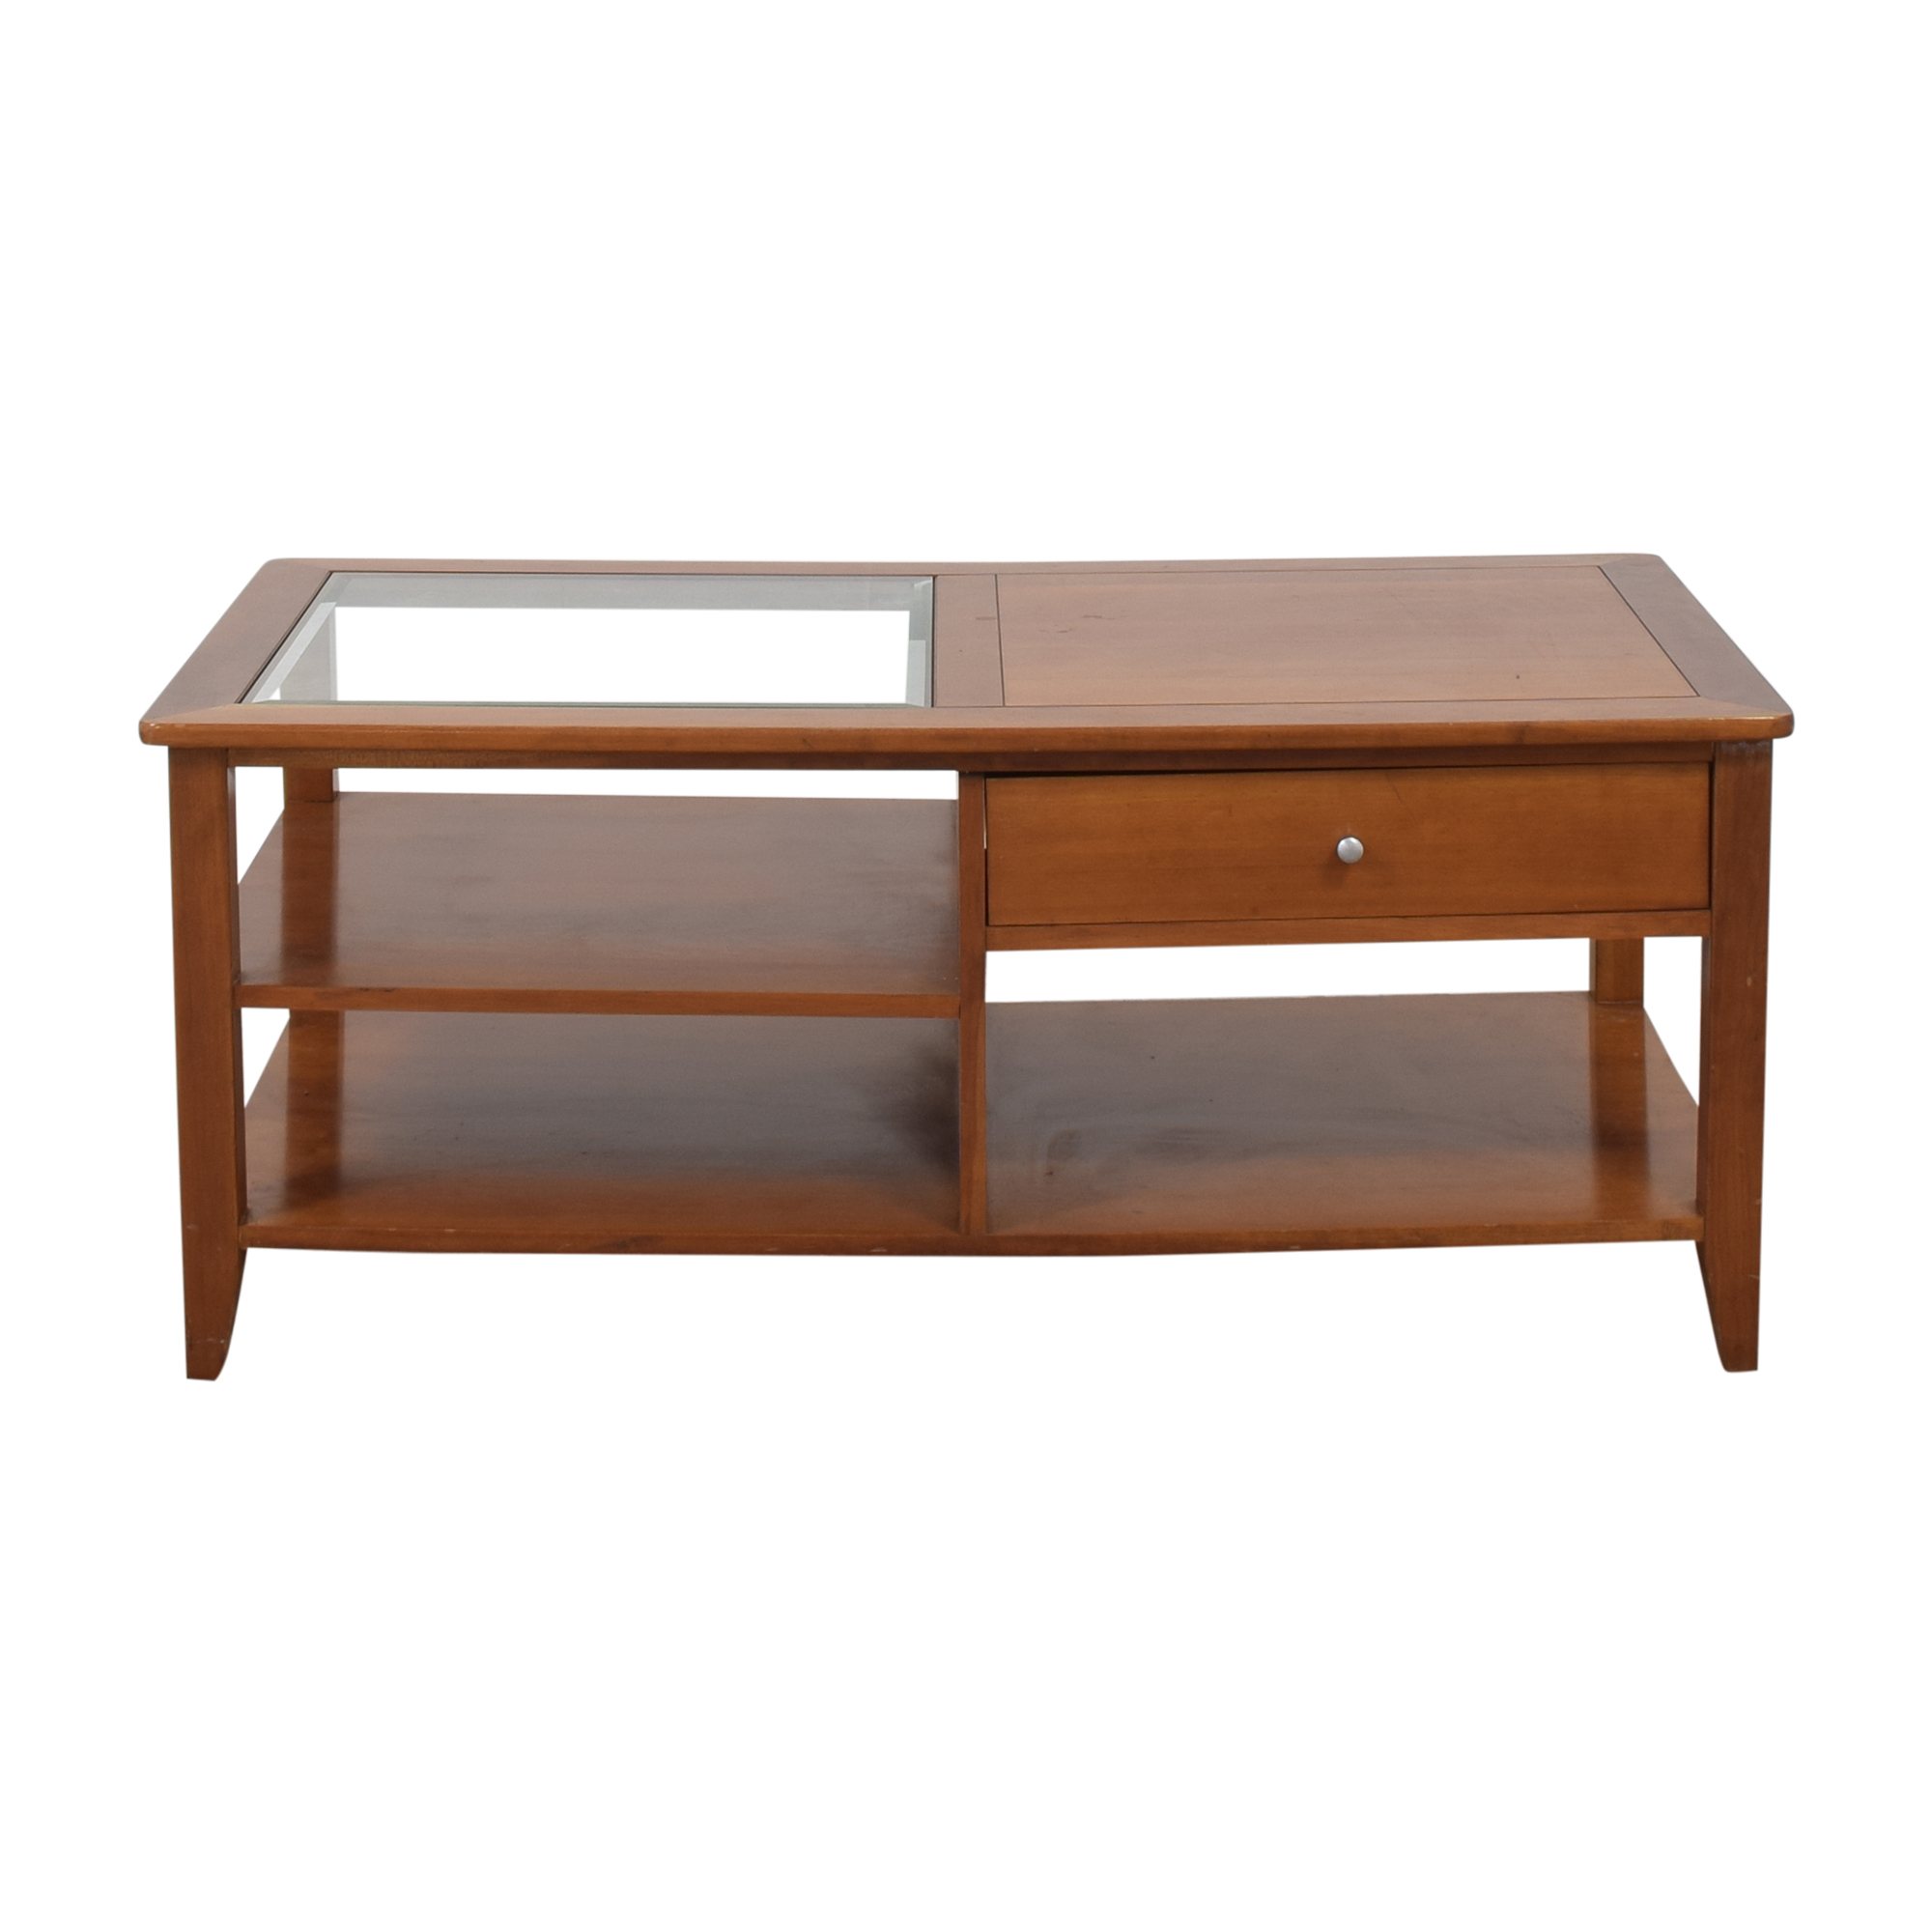 buy Hammary Furniture Hammary Furniture Tri-Level Coffee Table with Drawer online